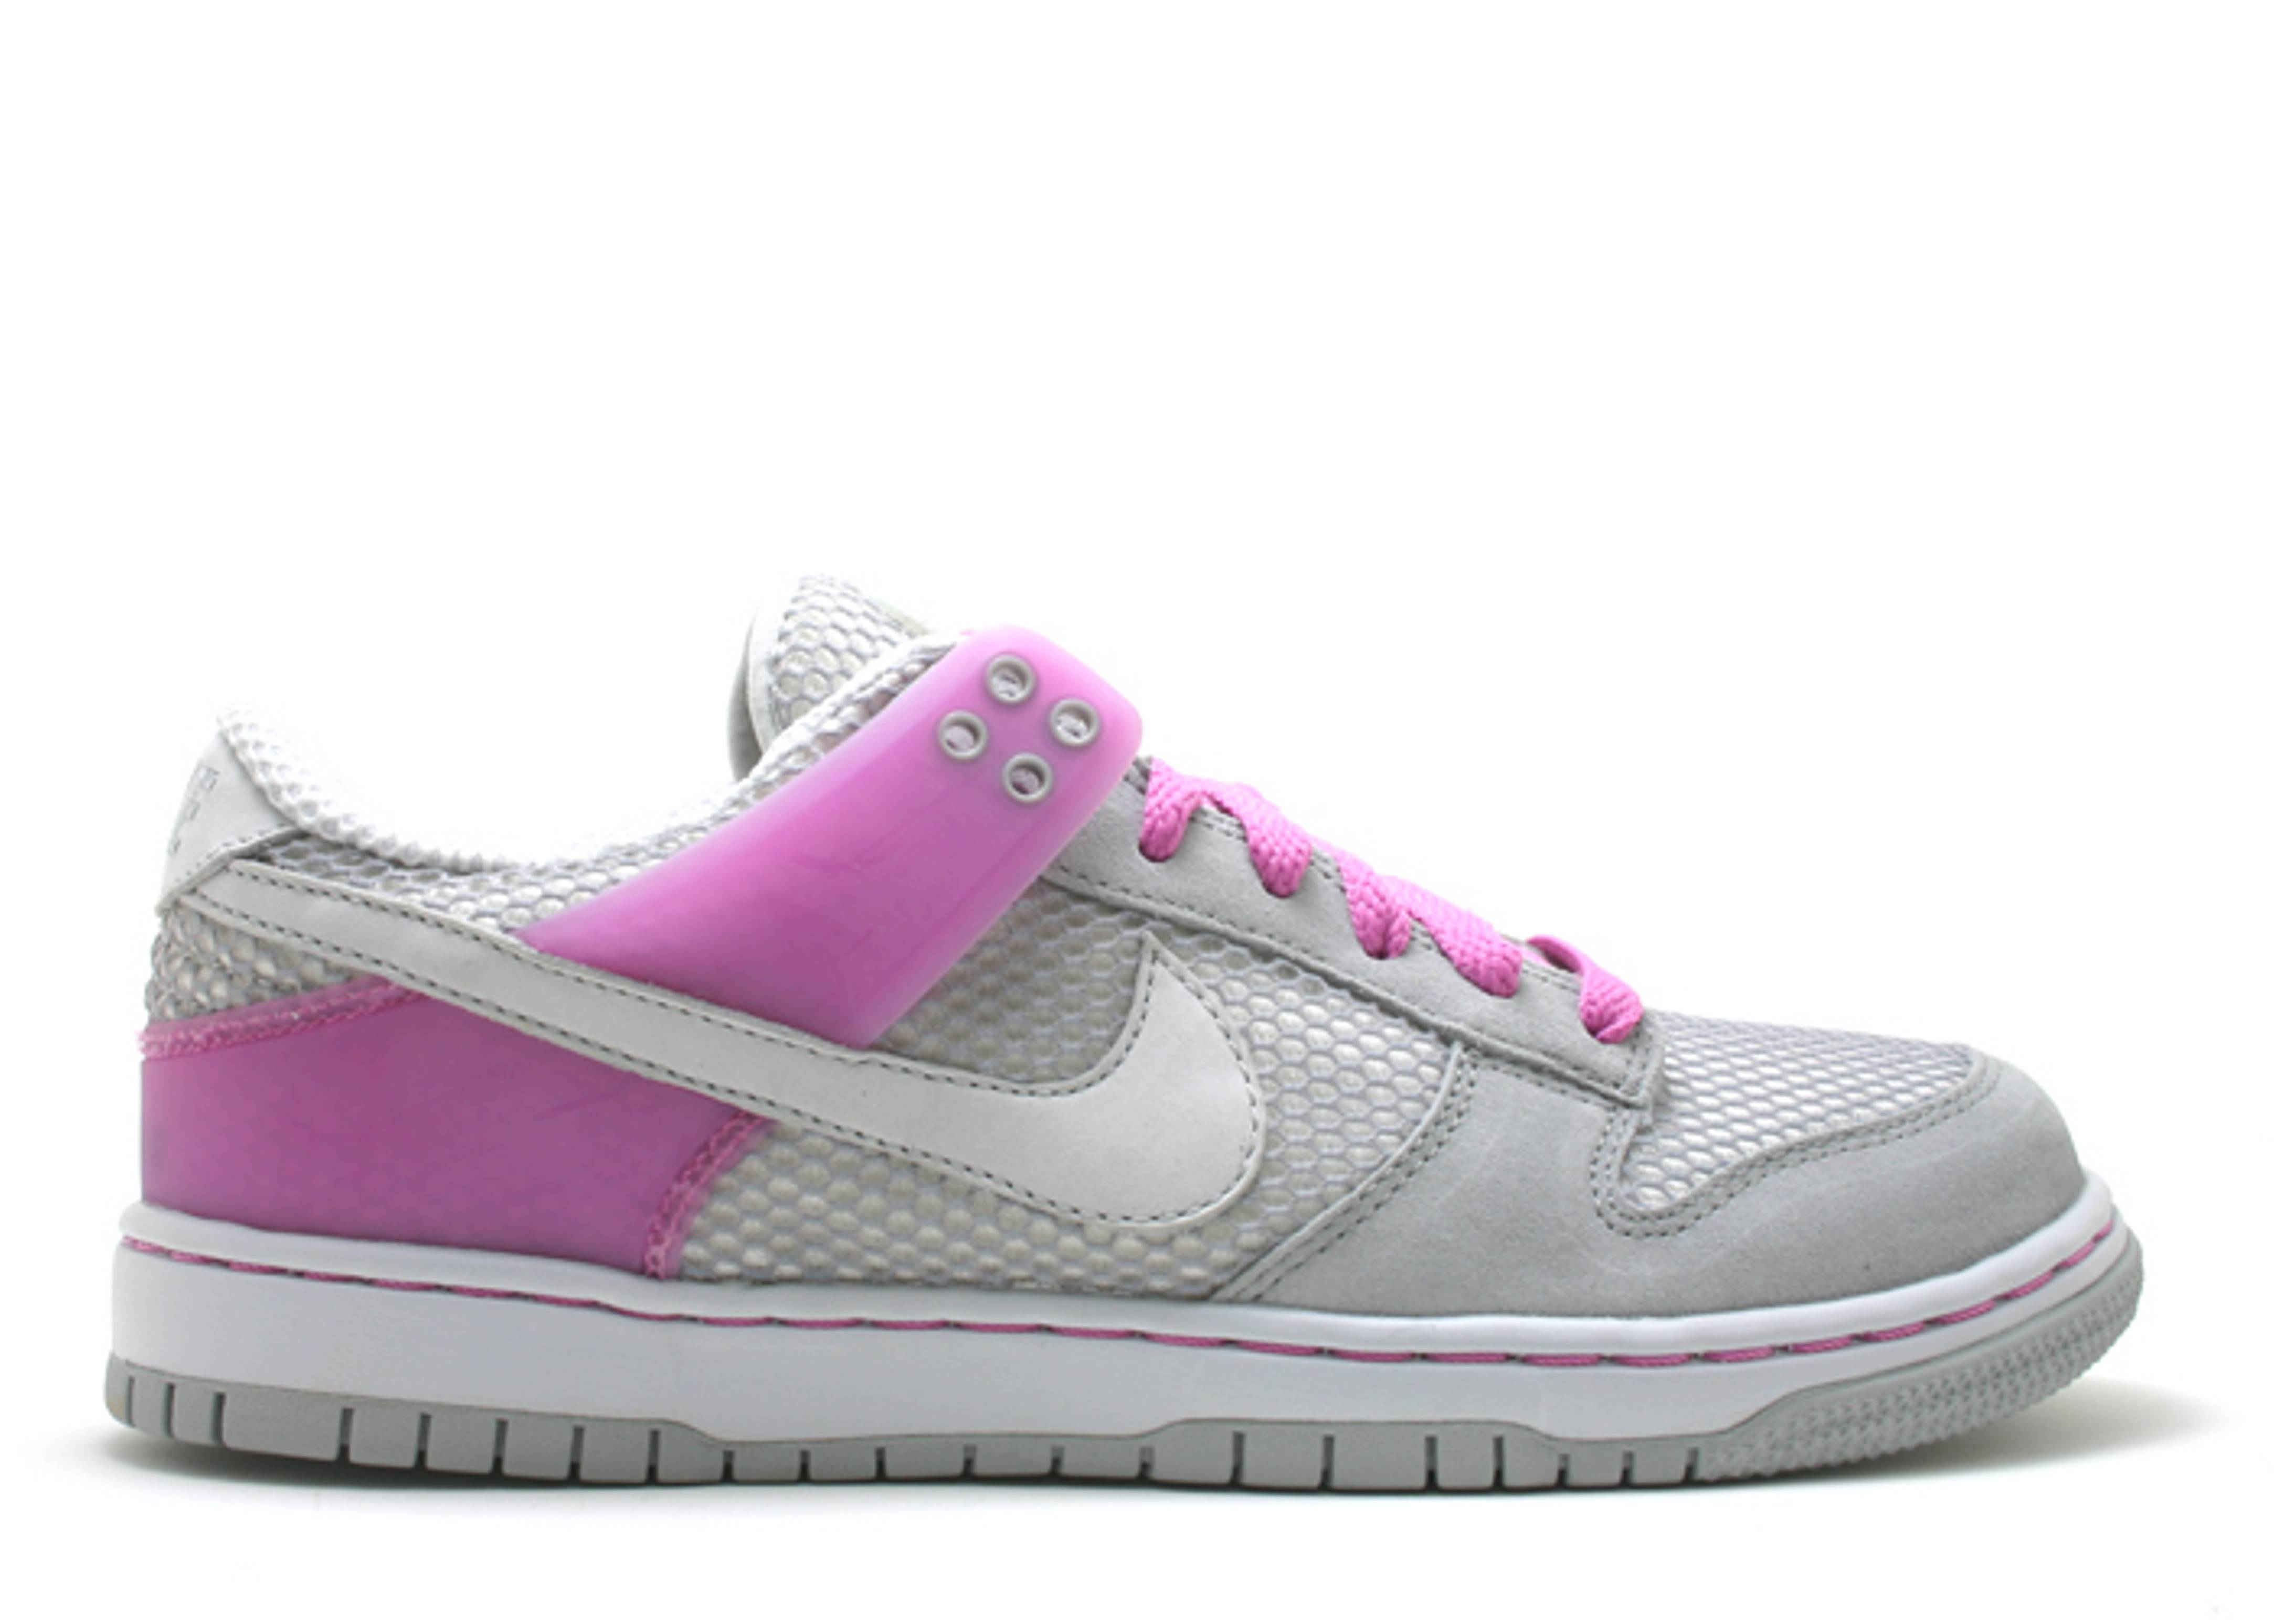 w's dunk low